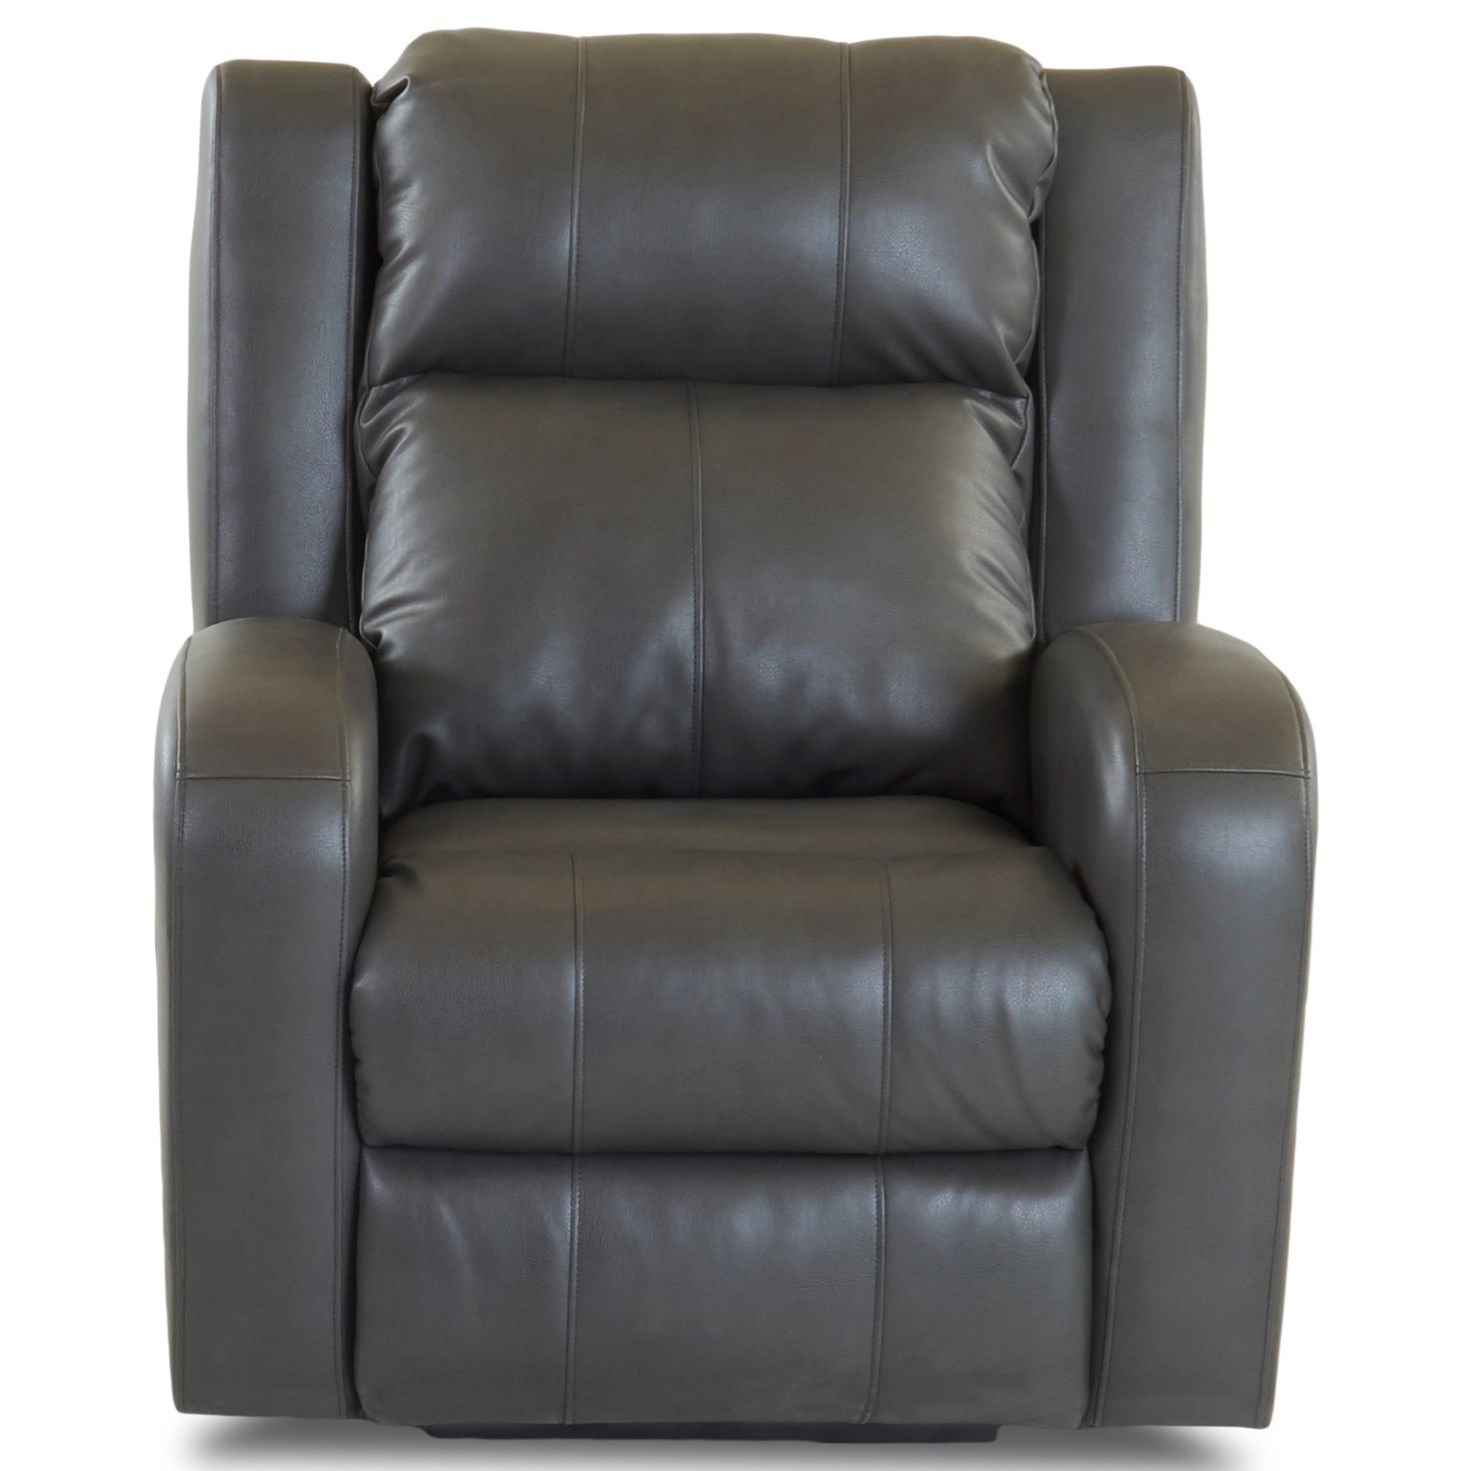 Casual Power Reclining Chair with USB Port